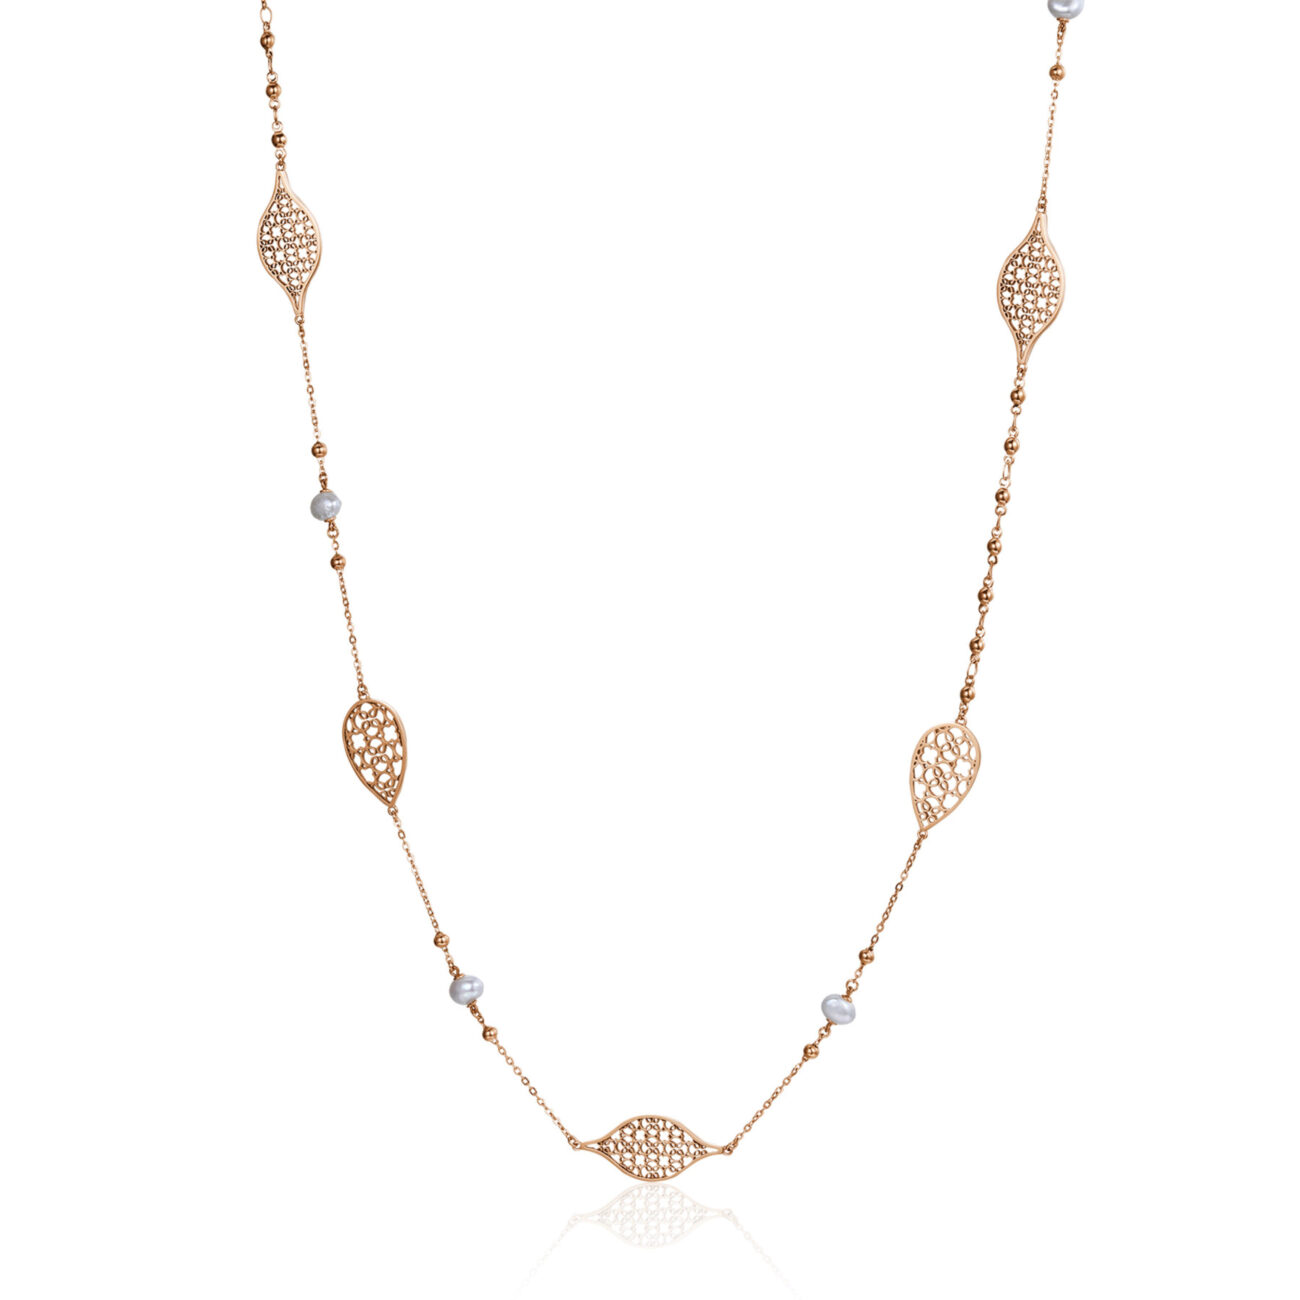 316L stainless steel necklace and rose gold finishes with pearls.